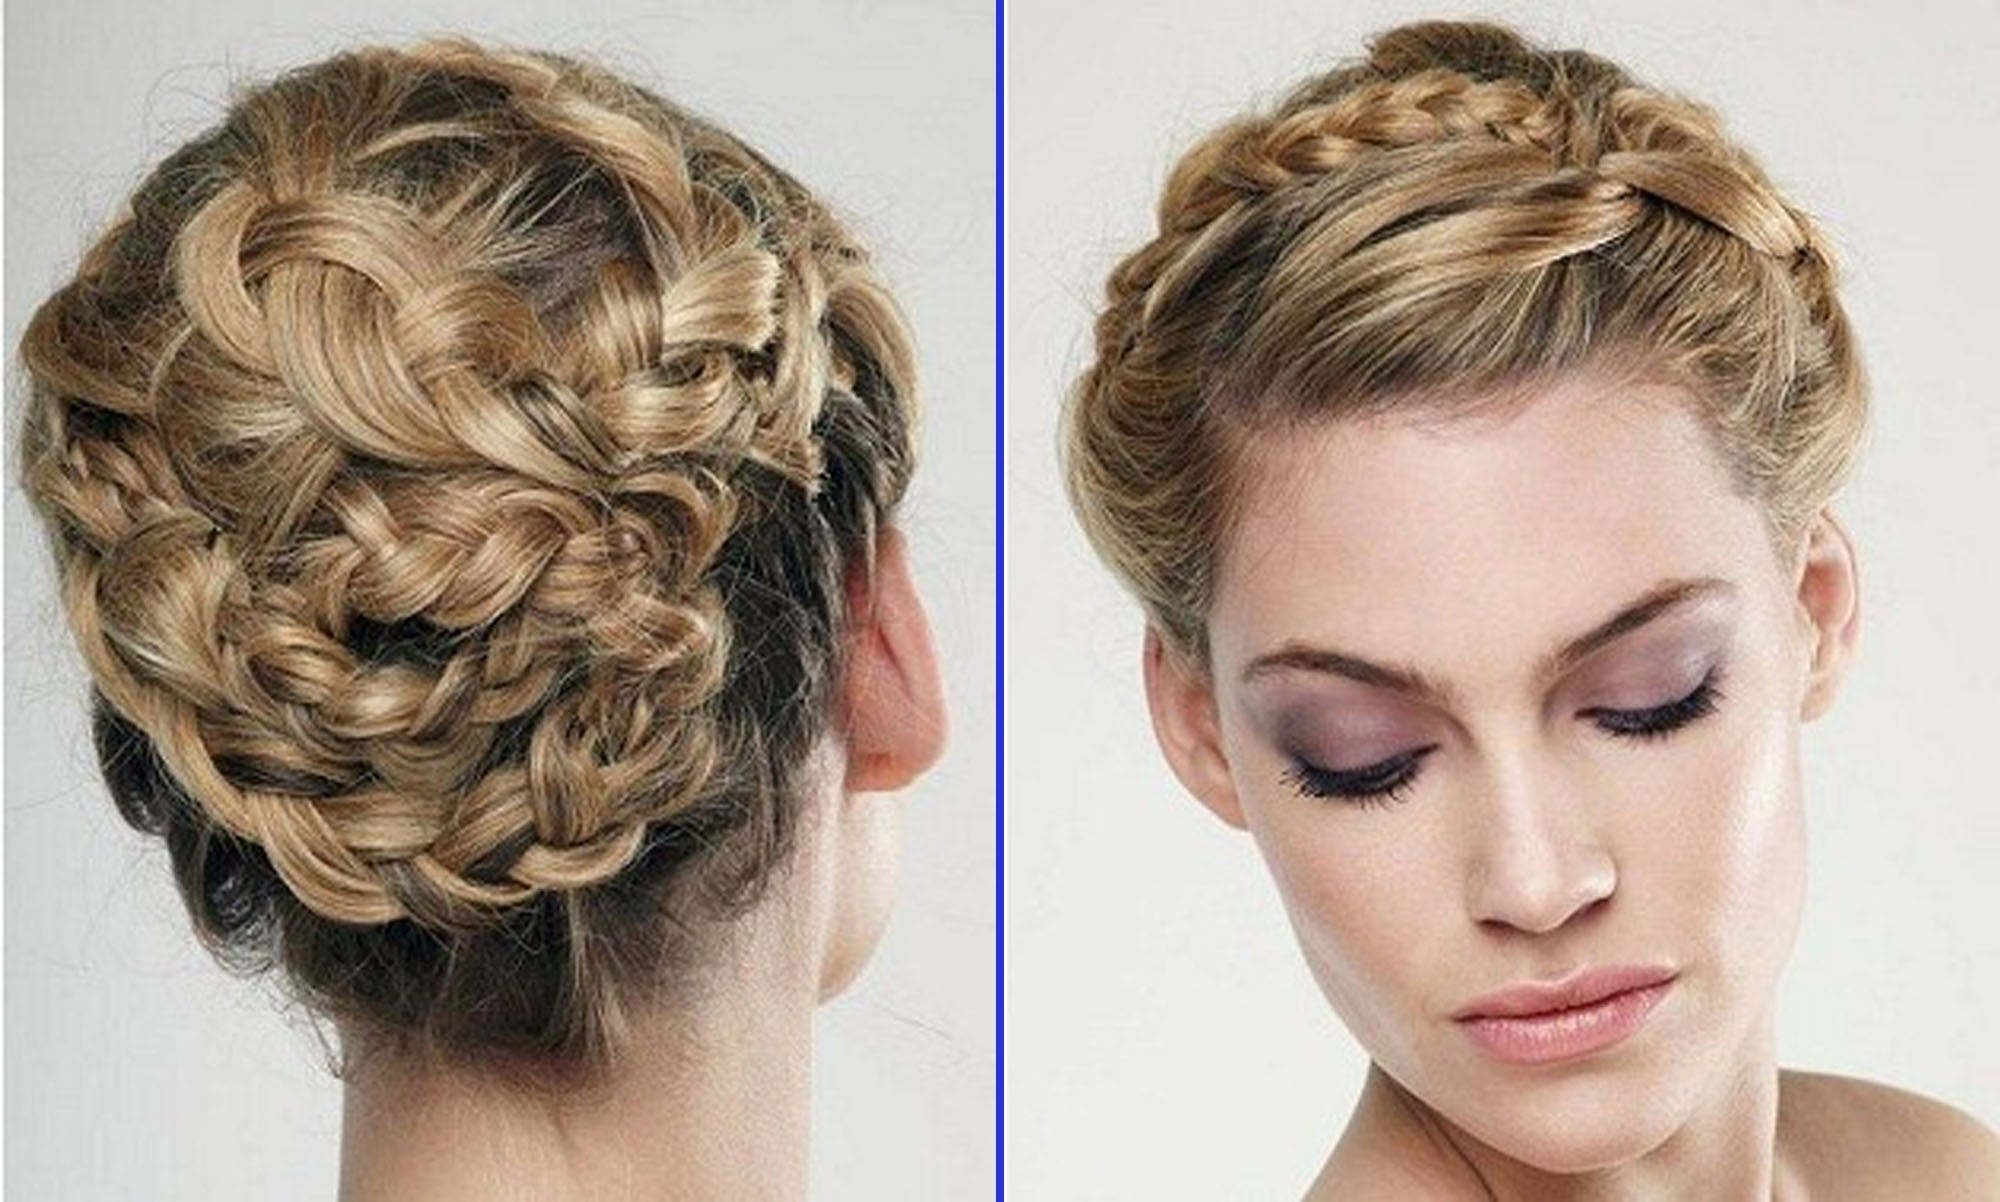 Braided Updo Hairstyles Wedding For Women Hairdresser | Medium Hair Intended For Wavy Hair Updo Hairstyles (View 11 of 15)